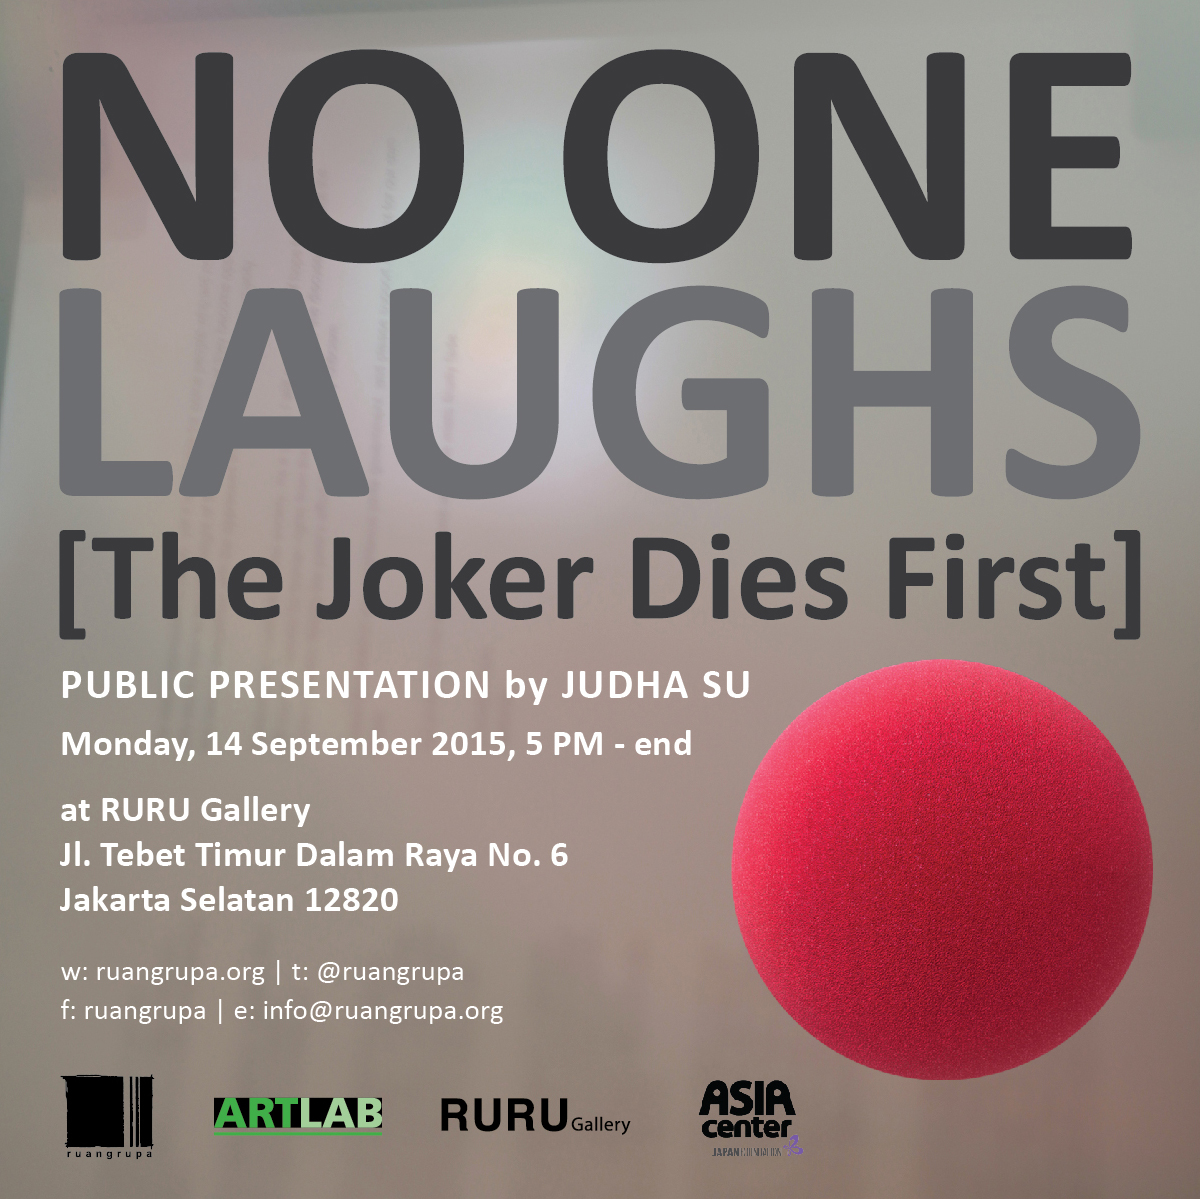 No One Laughs [The Joker Dies First] – Public presentation by Judha Su